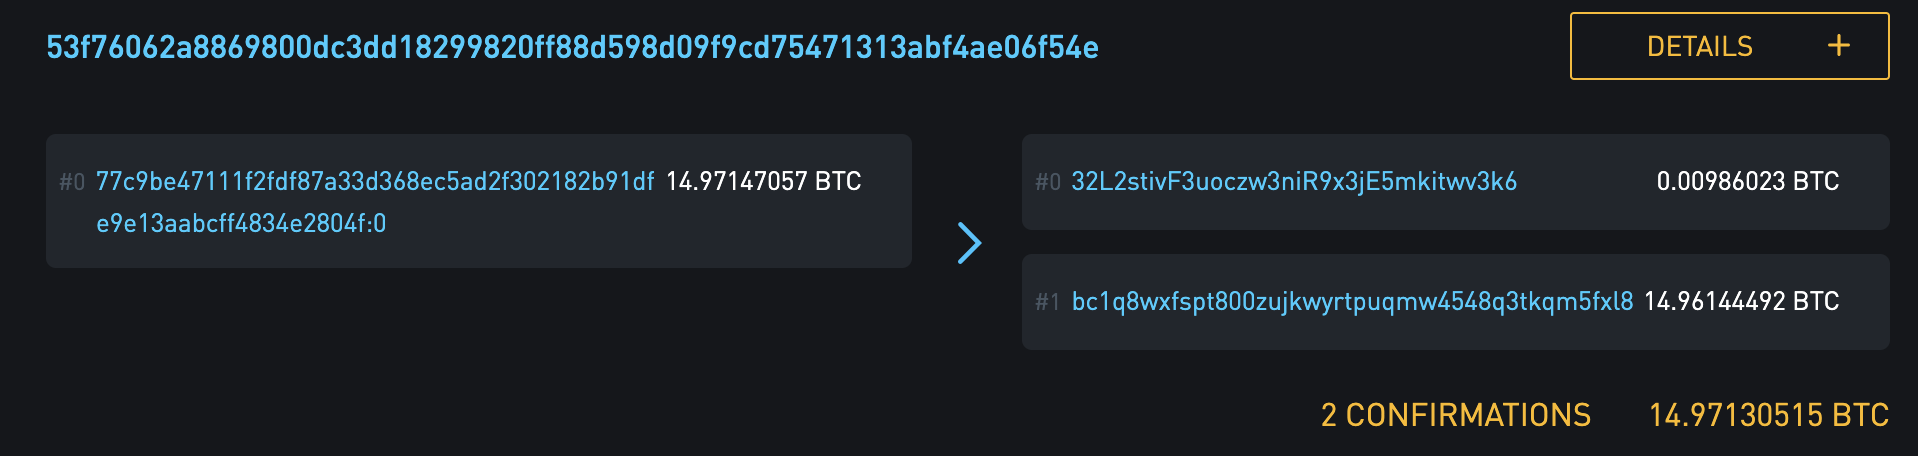 Coinbase uses bech32 for their change addresses, even when the send is going to non bech32.